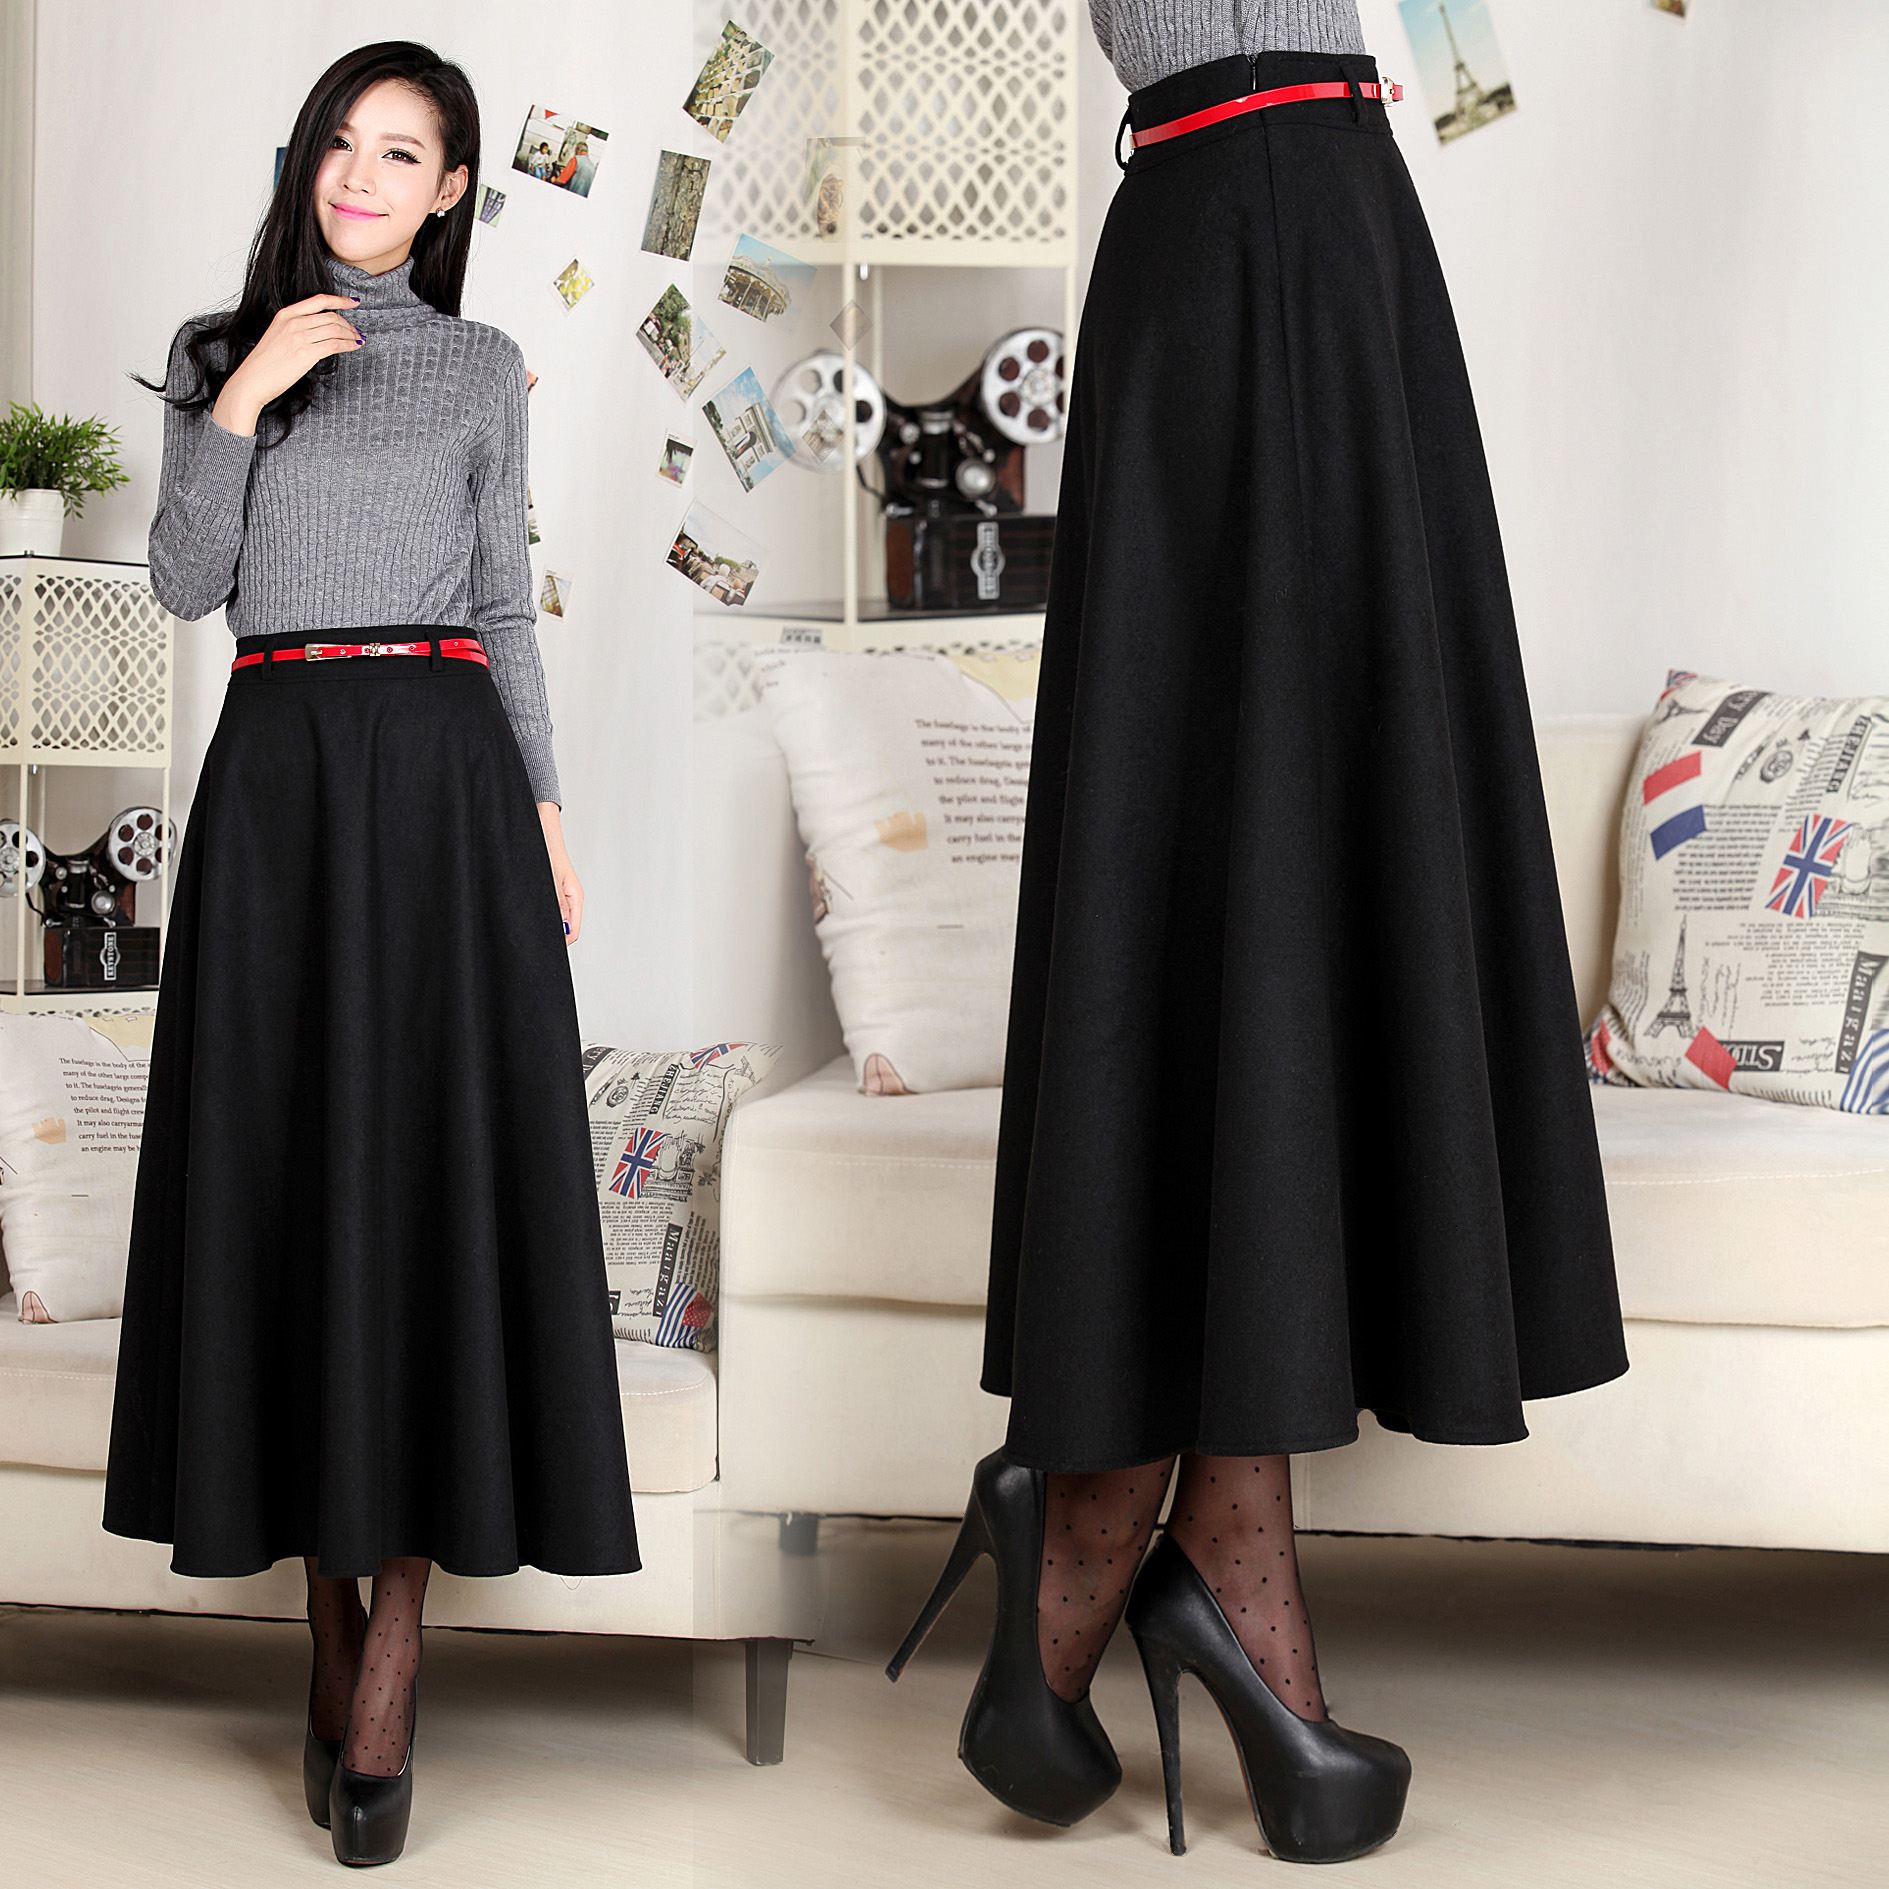 Compare Prices on Wool Maxi Skirt- Online Shopping/Buy Low Price ...